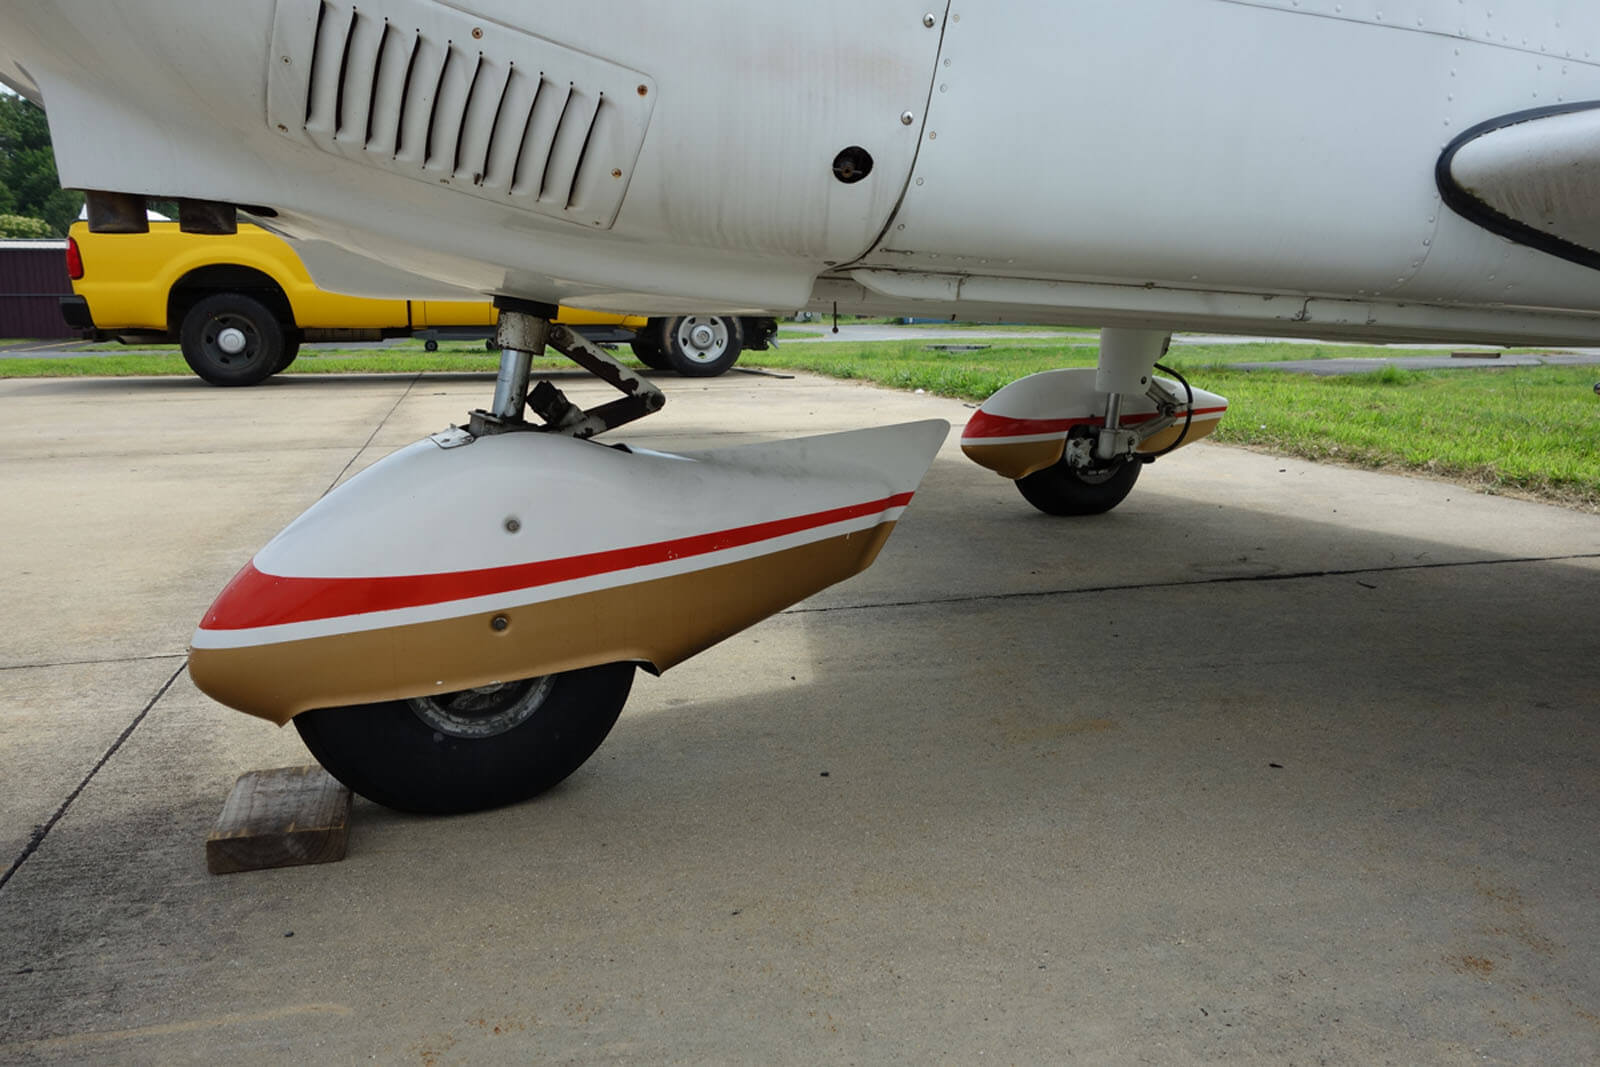 1976 Piper Archer – FOR SALE at Princeton Airport – Contact Ken Nierenberg at 609-731-4628 for details.